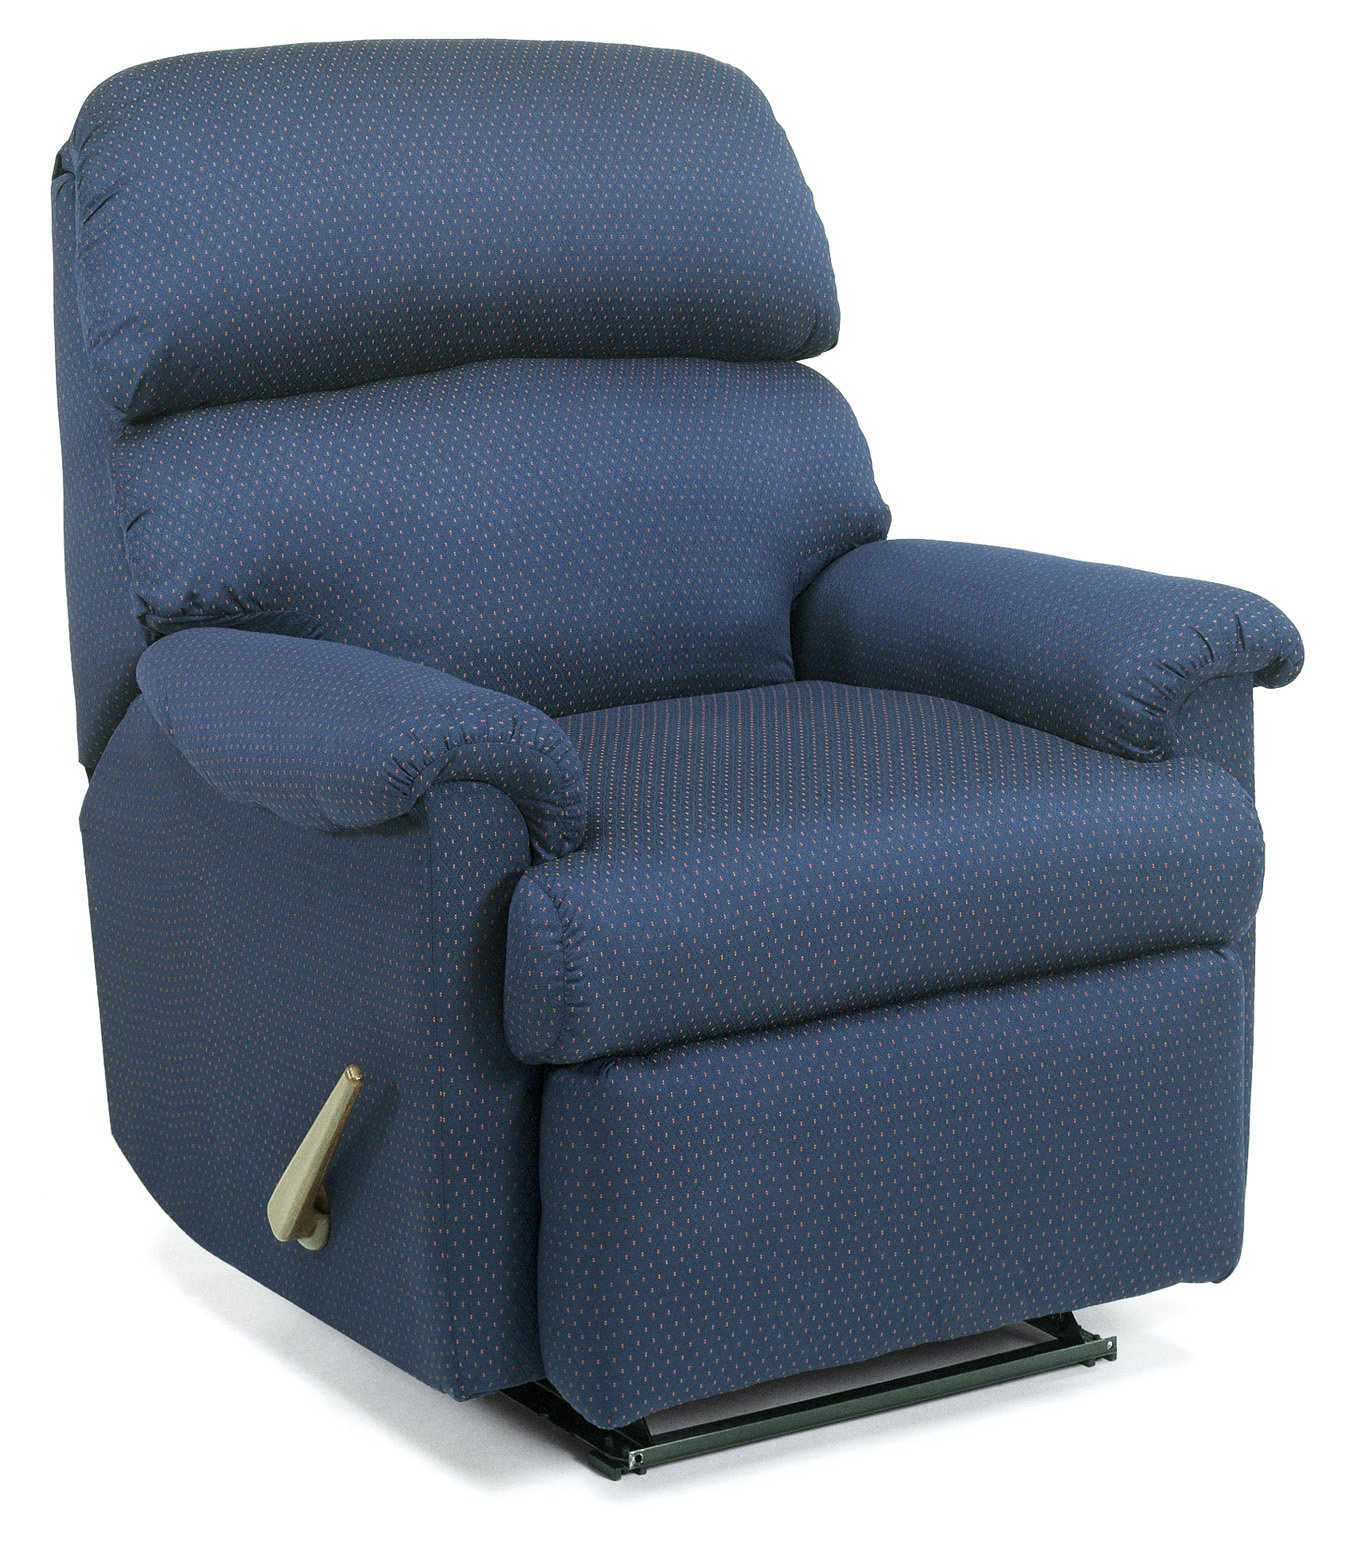 Heavy Duty. Firefighter Recliner  sc 1 st  Flexsteel & Heavy Duty | Flexsteel.com islam-shia.org